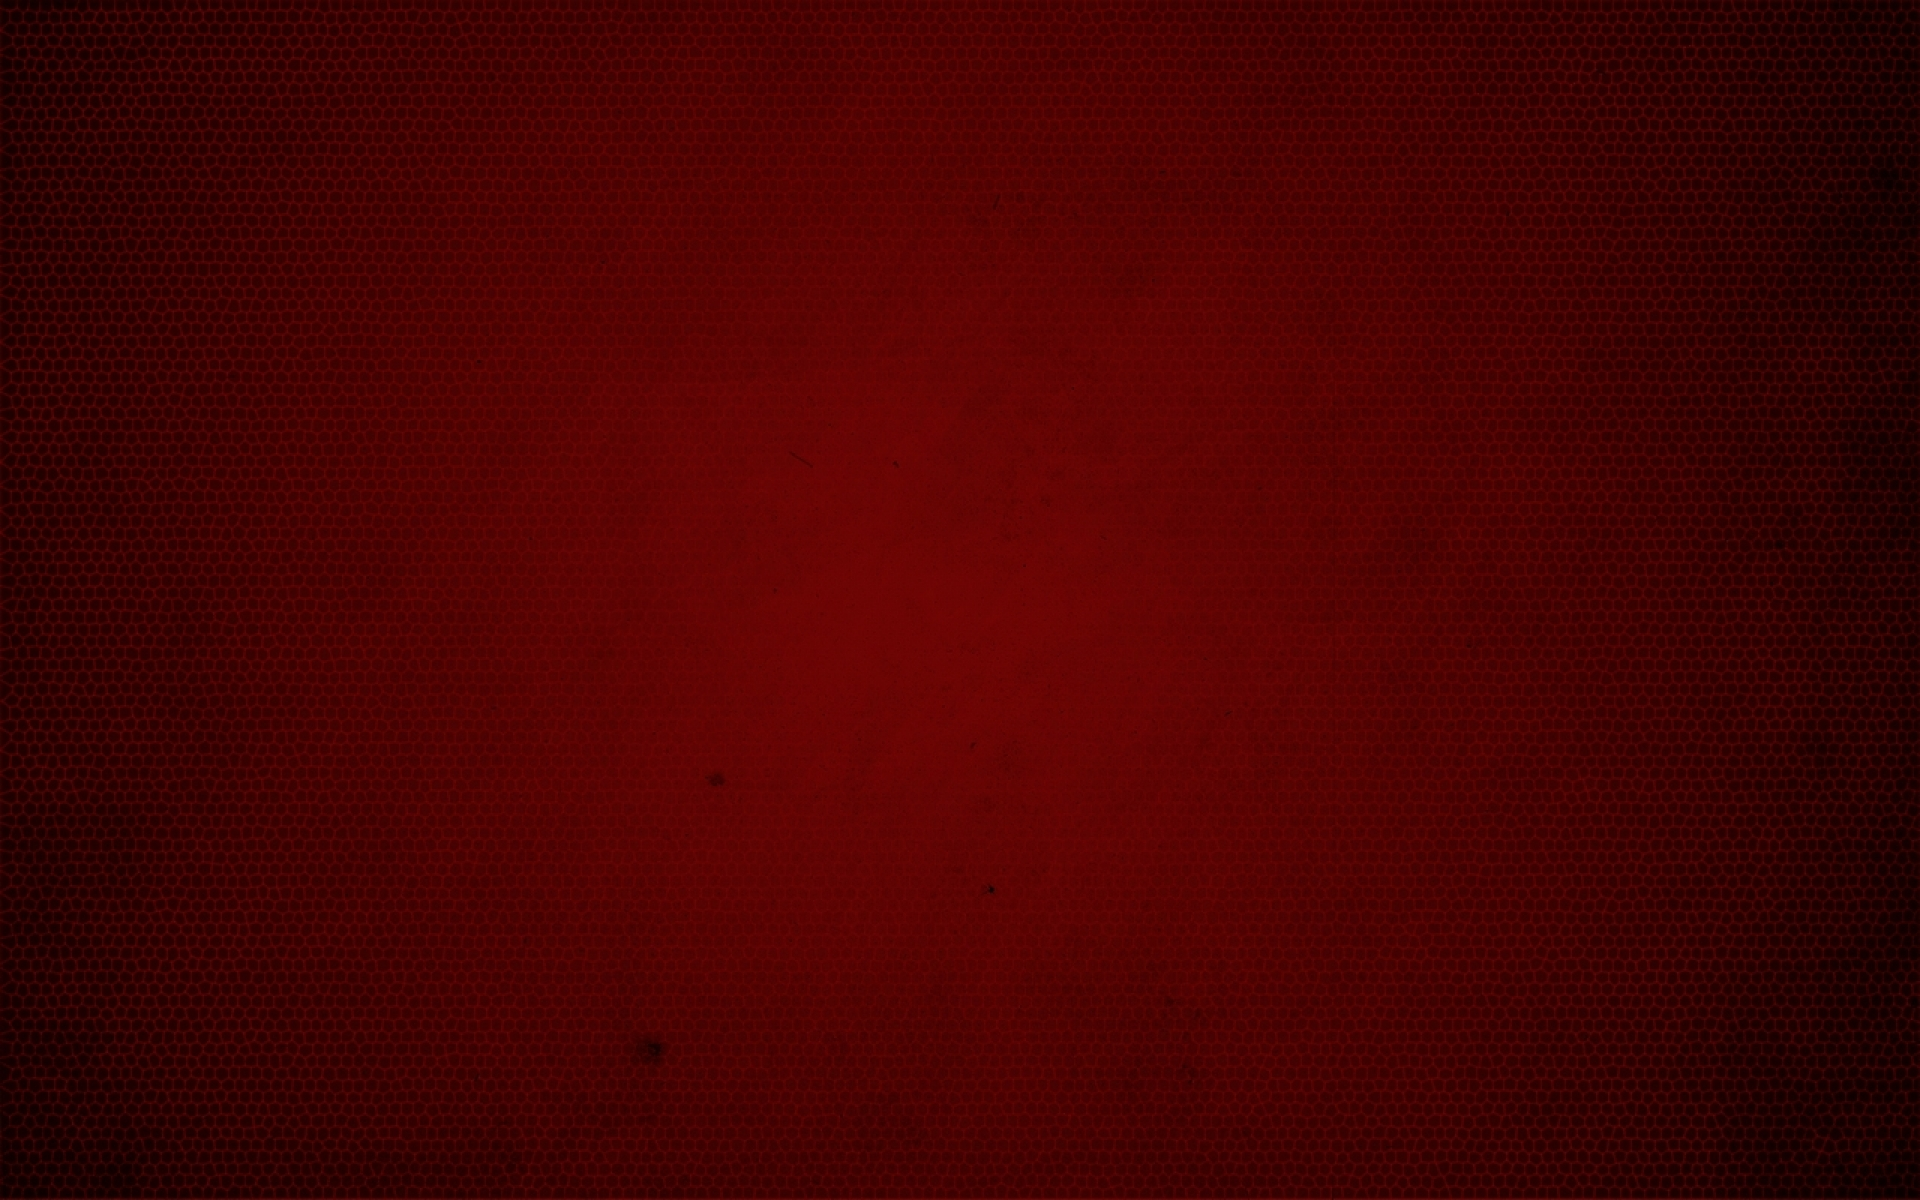 Red Wallpapers, Pictures, Images